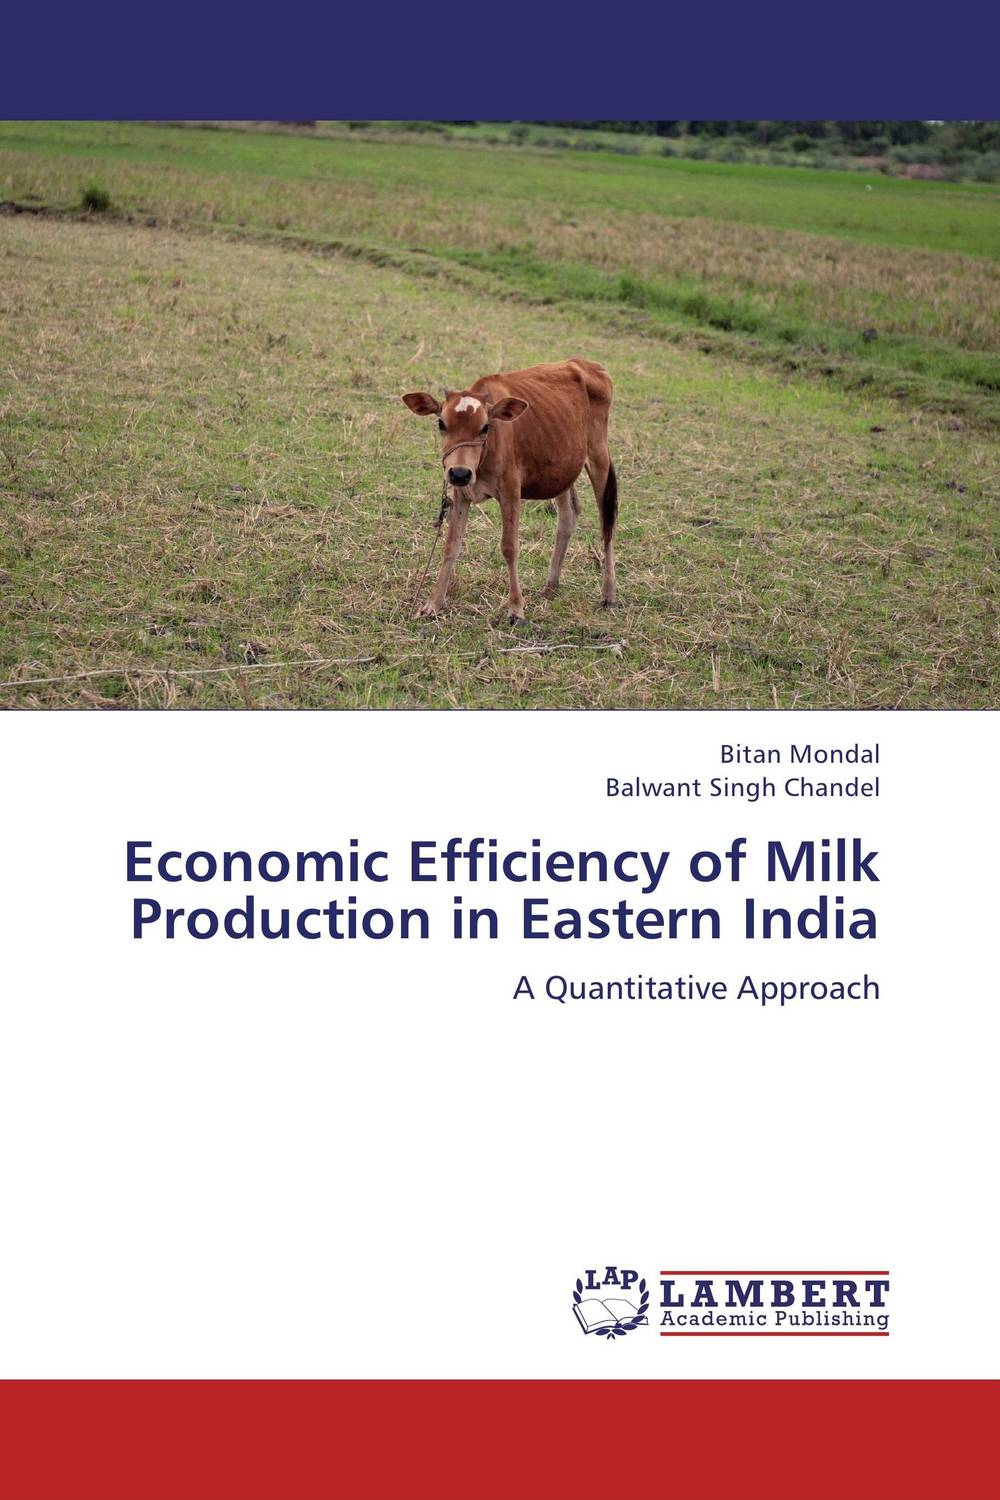 Economic Efficiency of Milk Production in Eastern India rakesh kumar production potential of summer mungbean cultivars in india